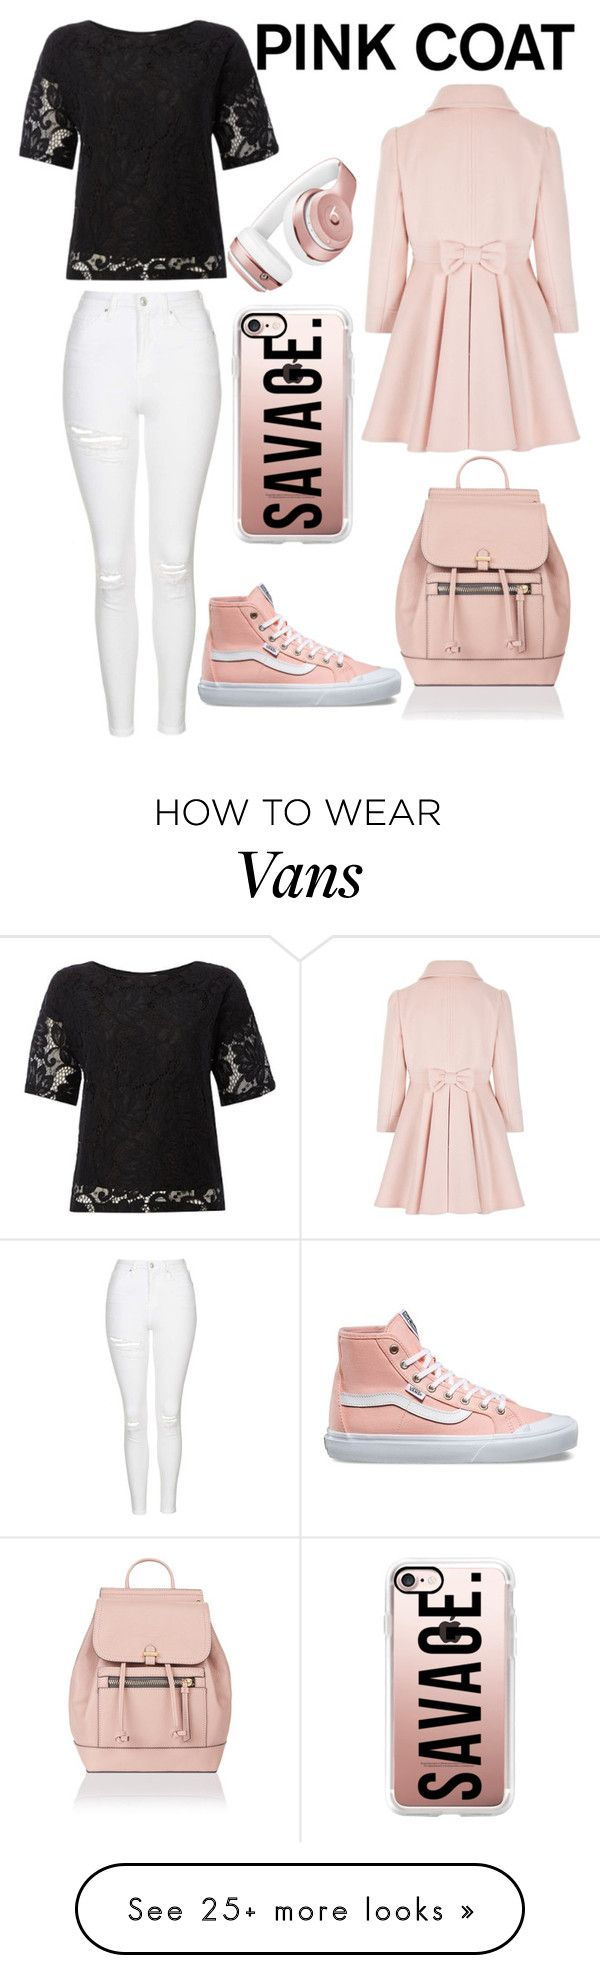 """Savage in pink"" by skinnyjeansamd on Polyvore featuring Topshop, Minimum, Vans, Accessorize, Beats by Dr. Dre and Casetify"